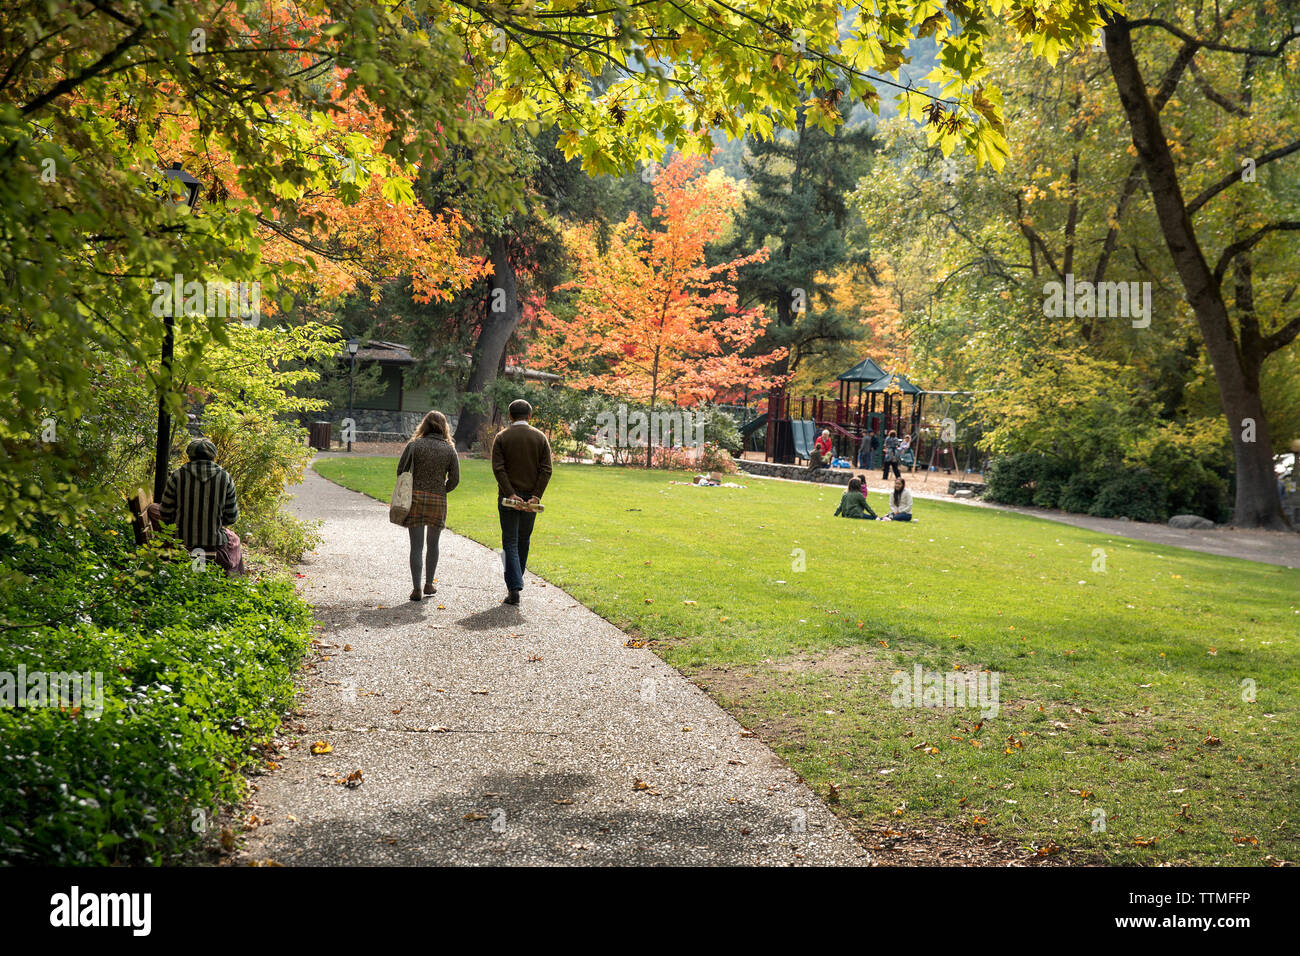 USA, Oregon, Ashland, a young man and woman walk through Lithia Park in the Fall - Stock Image